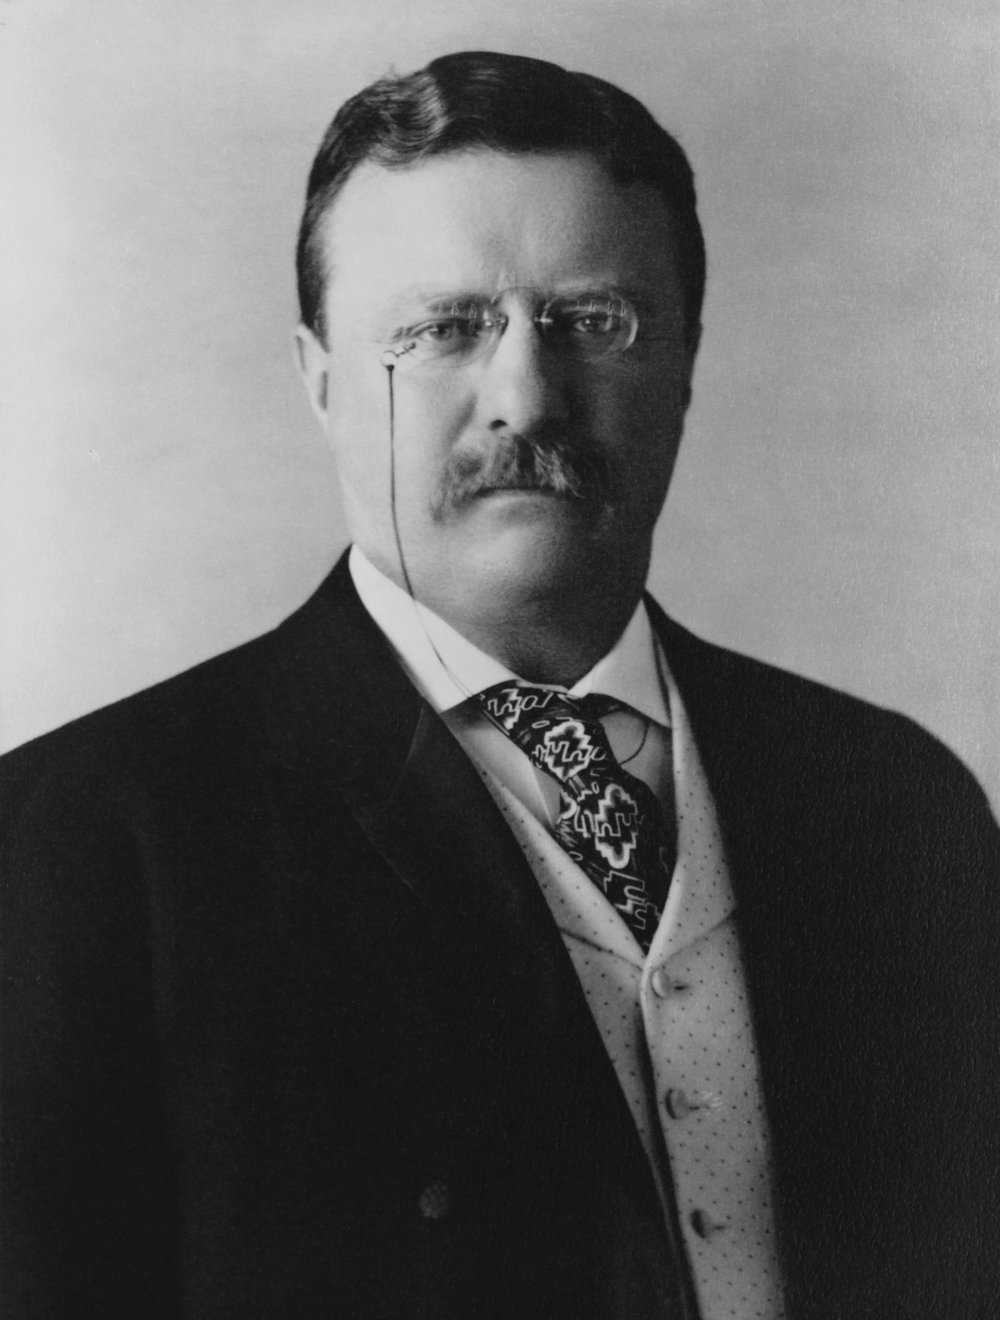 Pictured: President Theodore Roosevelt. Wikipedia Commons.